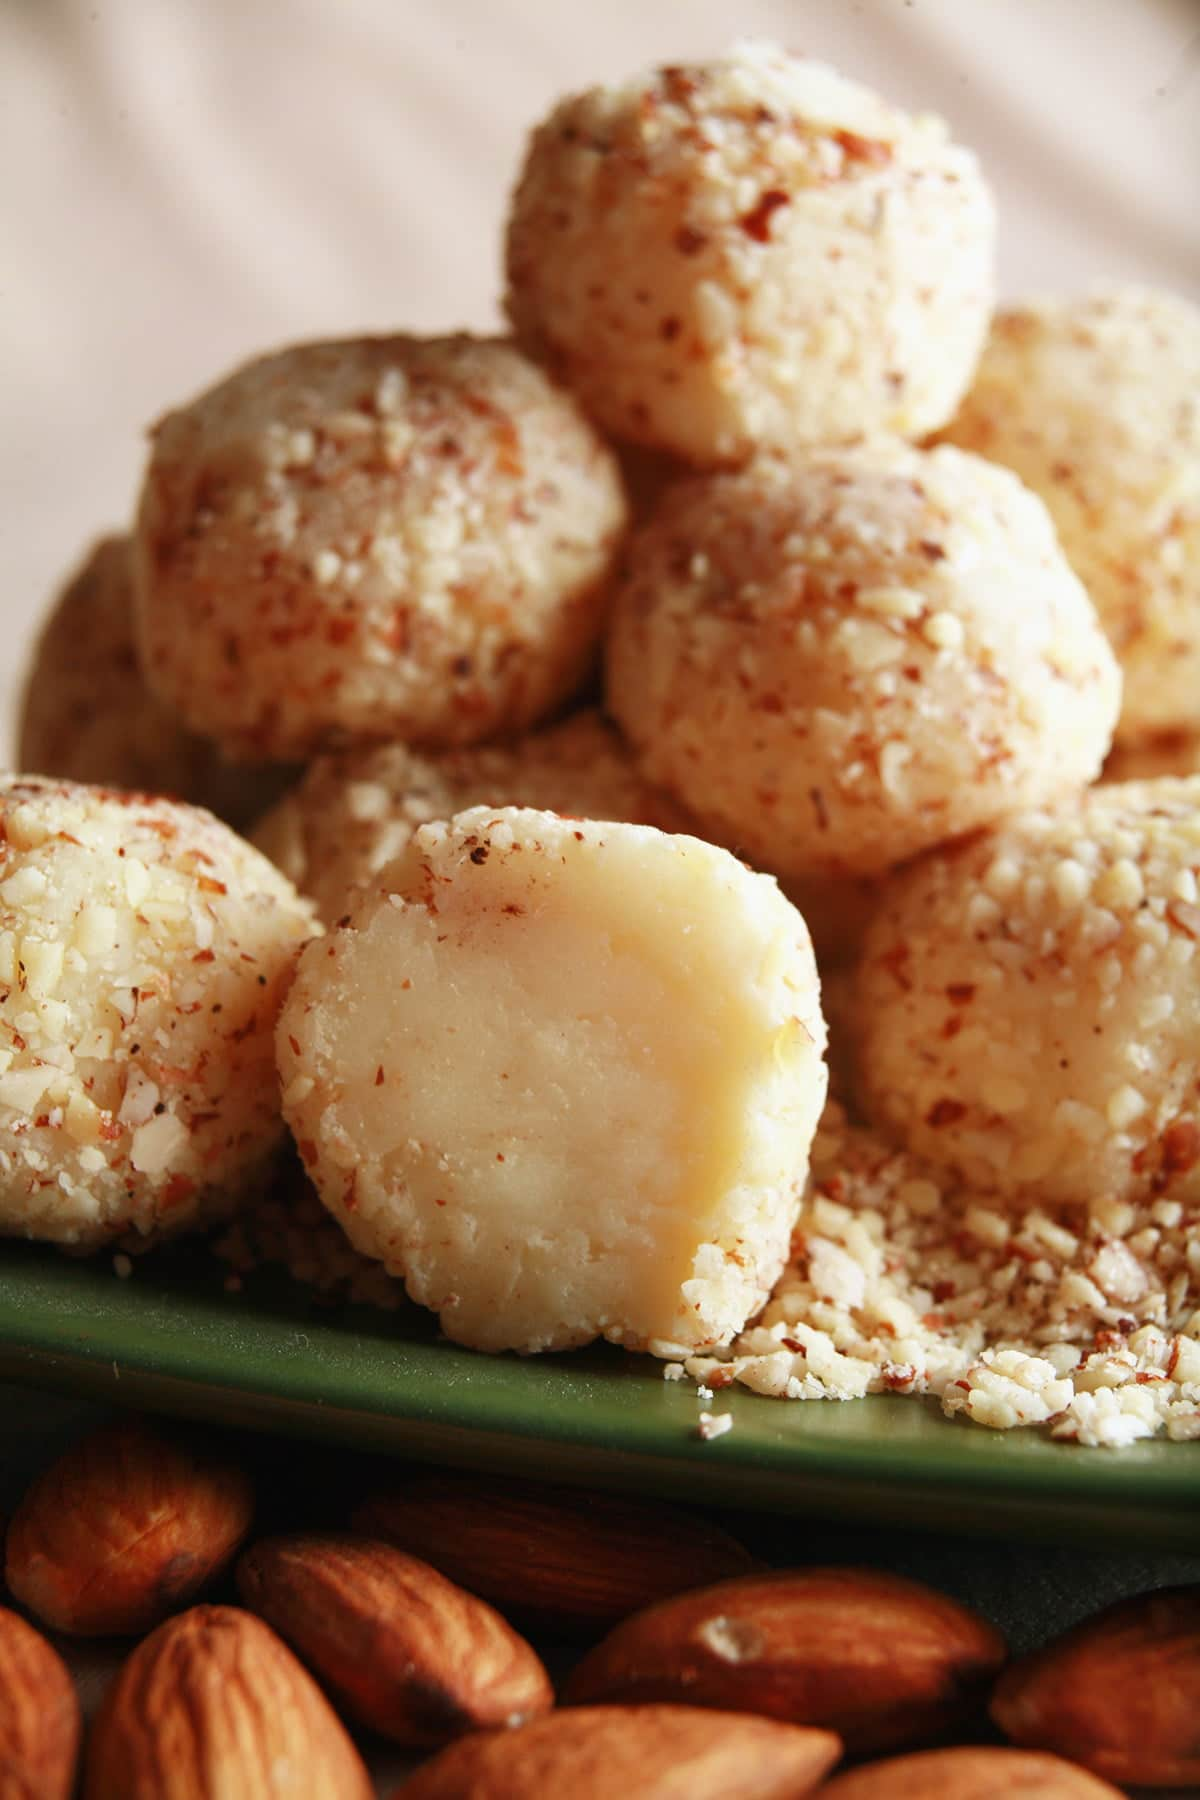 A close up view of a pile of white chocolate amaretto truffles, on a small green plate. The truffles are covered in finely chopped almonds, and there are a few whole almonds in the foreground.